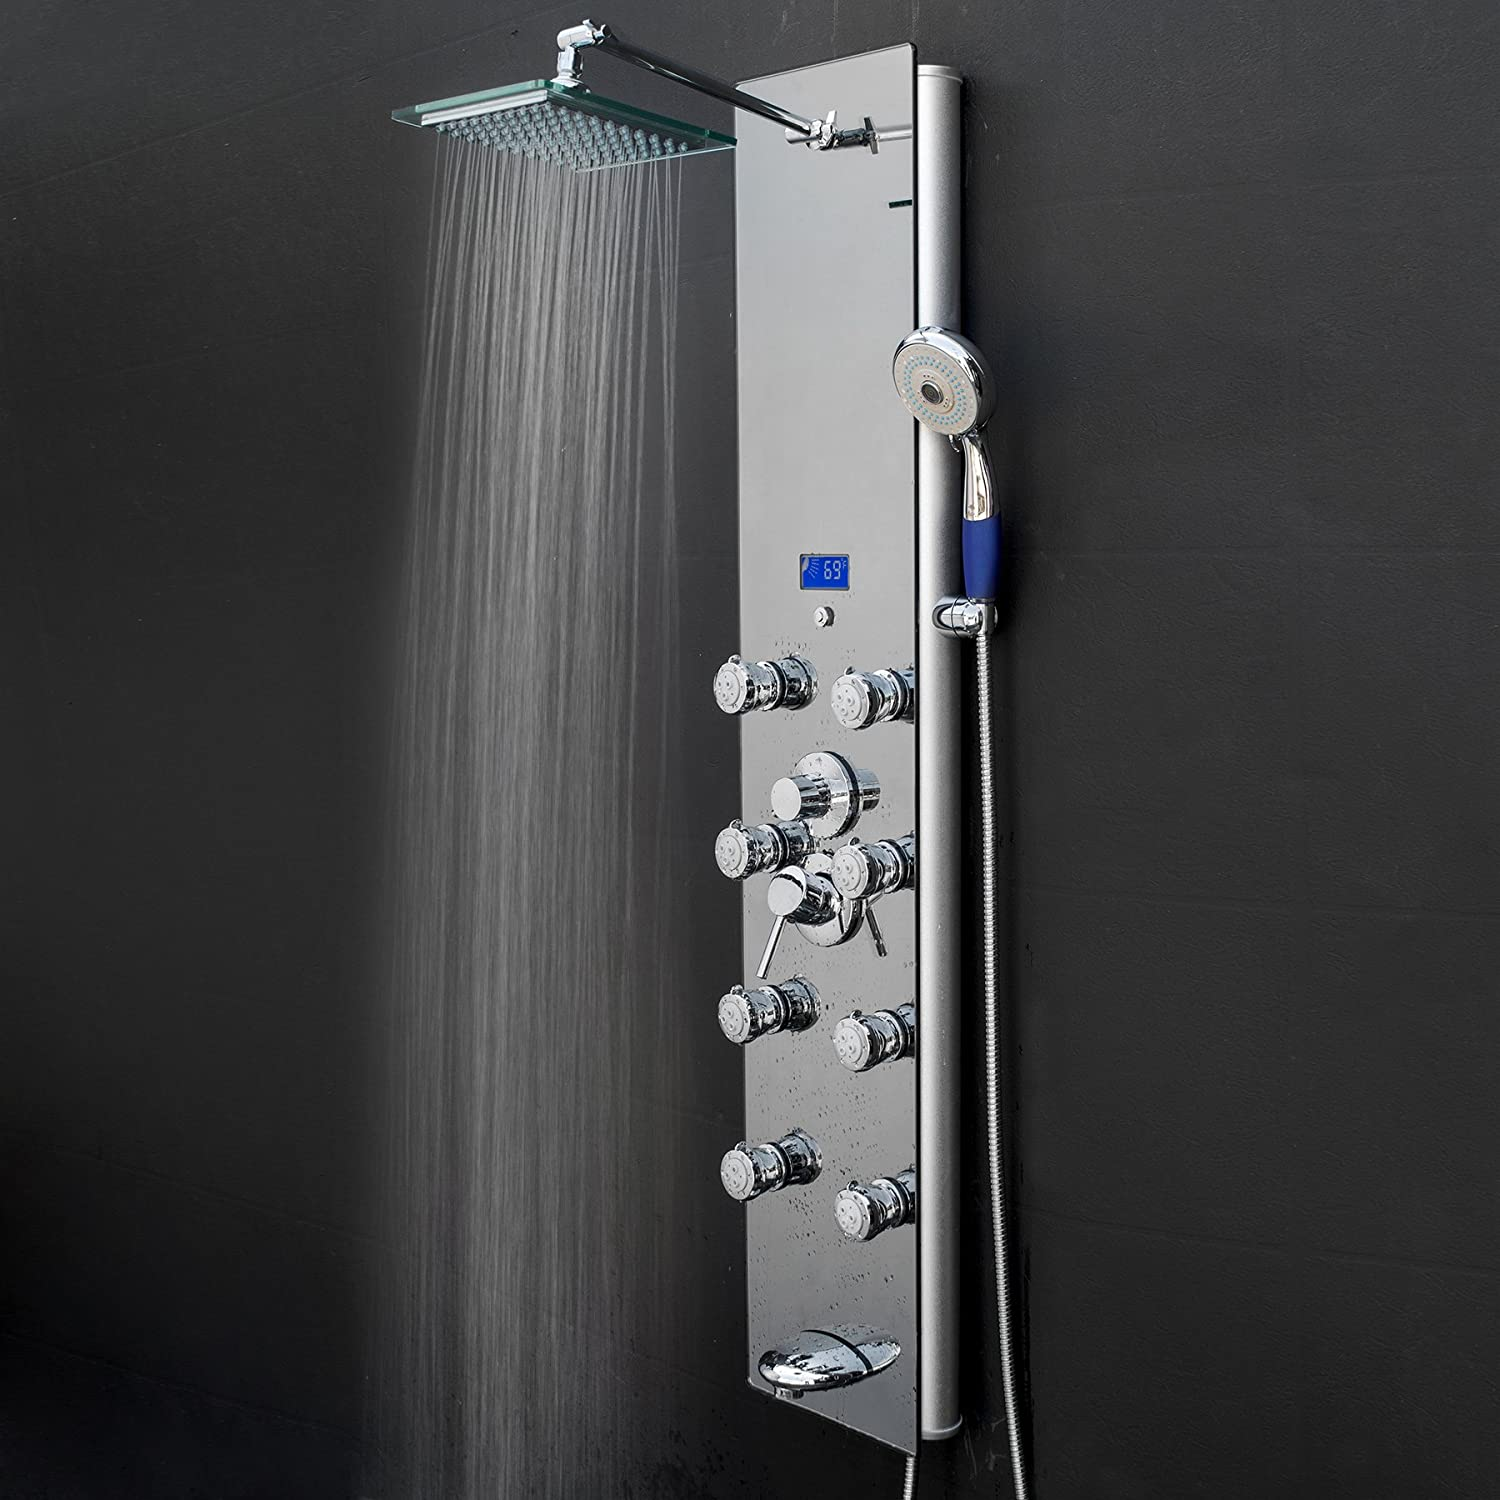 AKDY AK-787392M 52 Inch Tempered Glass Aluminum Shower Panel ...